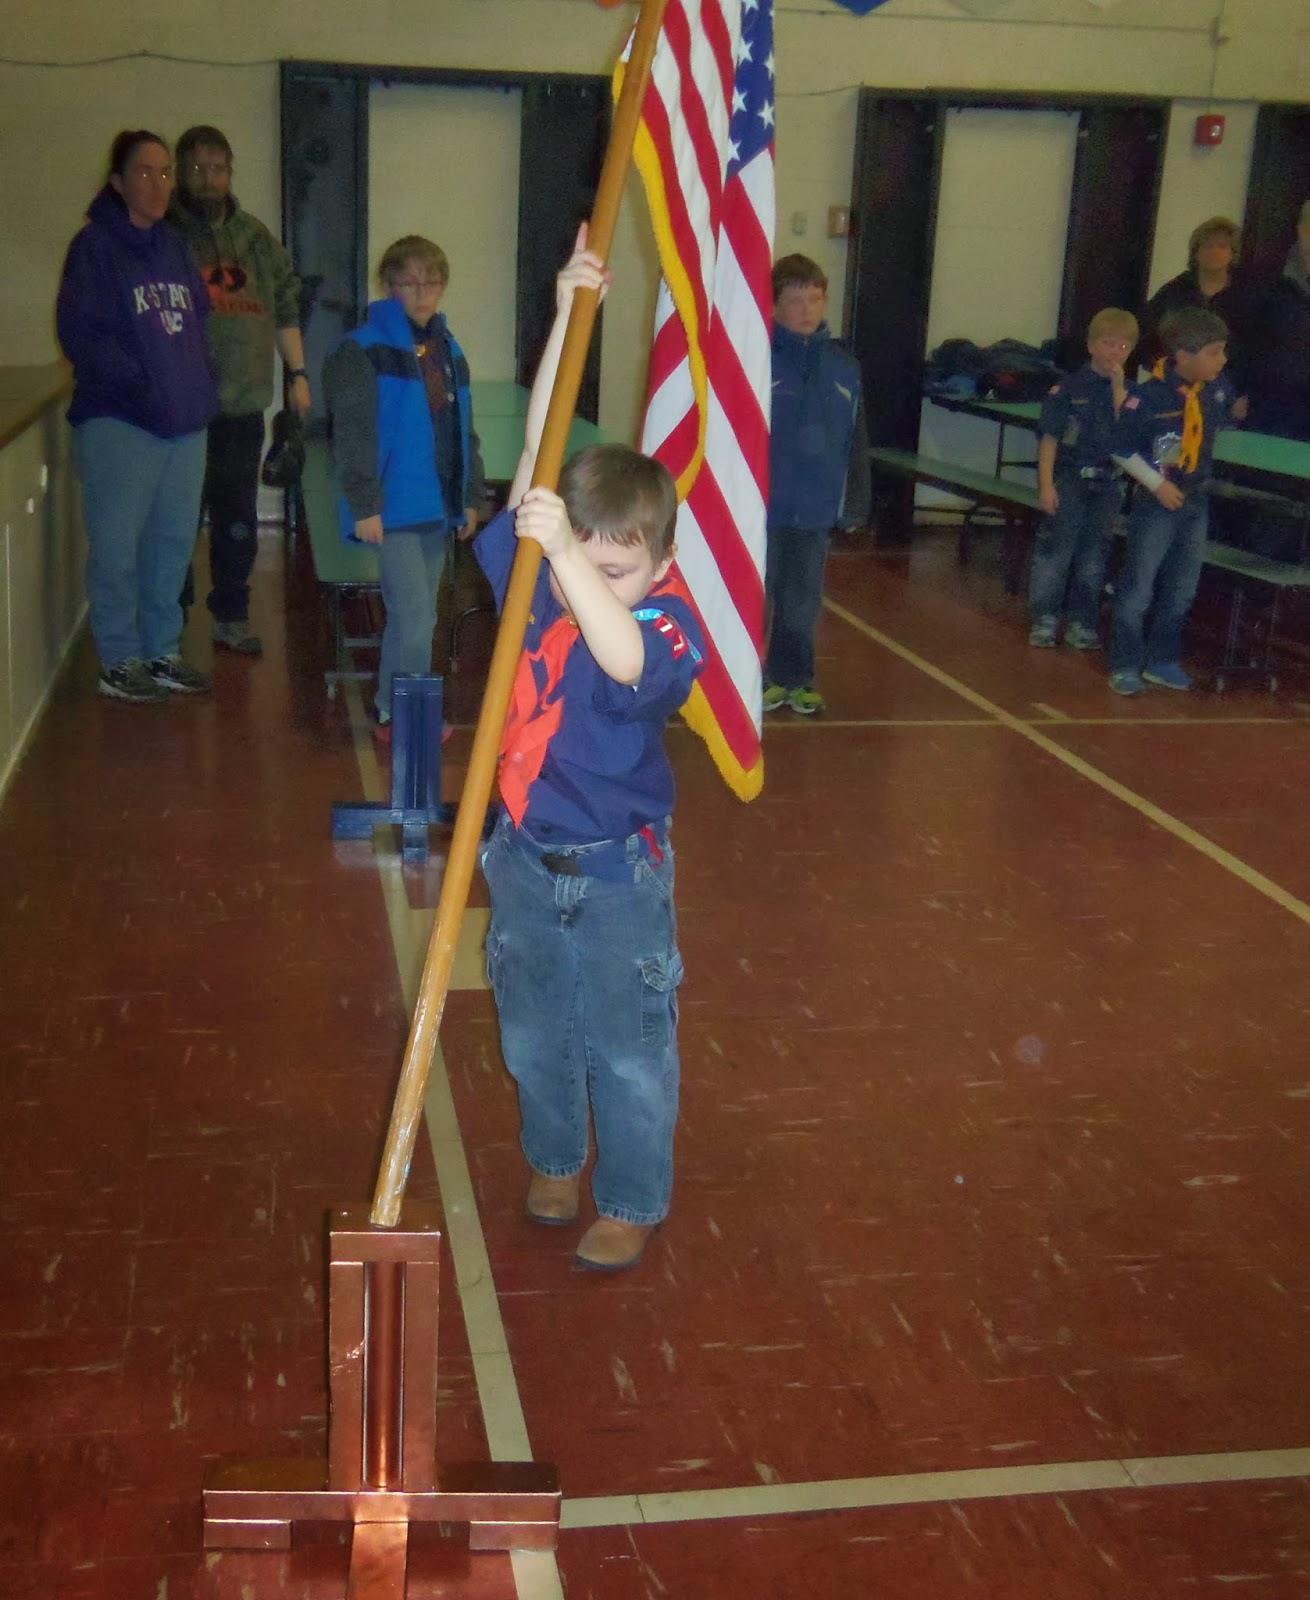 American Flag Ceremony, BoyScout Flag, BoyScout Boycott,